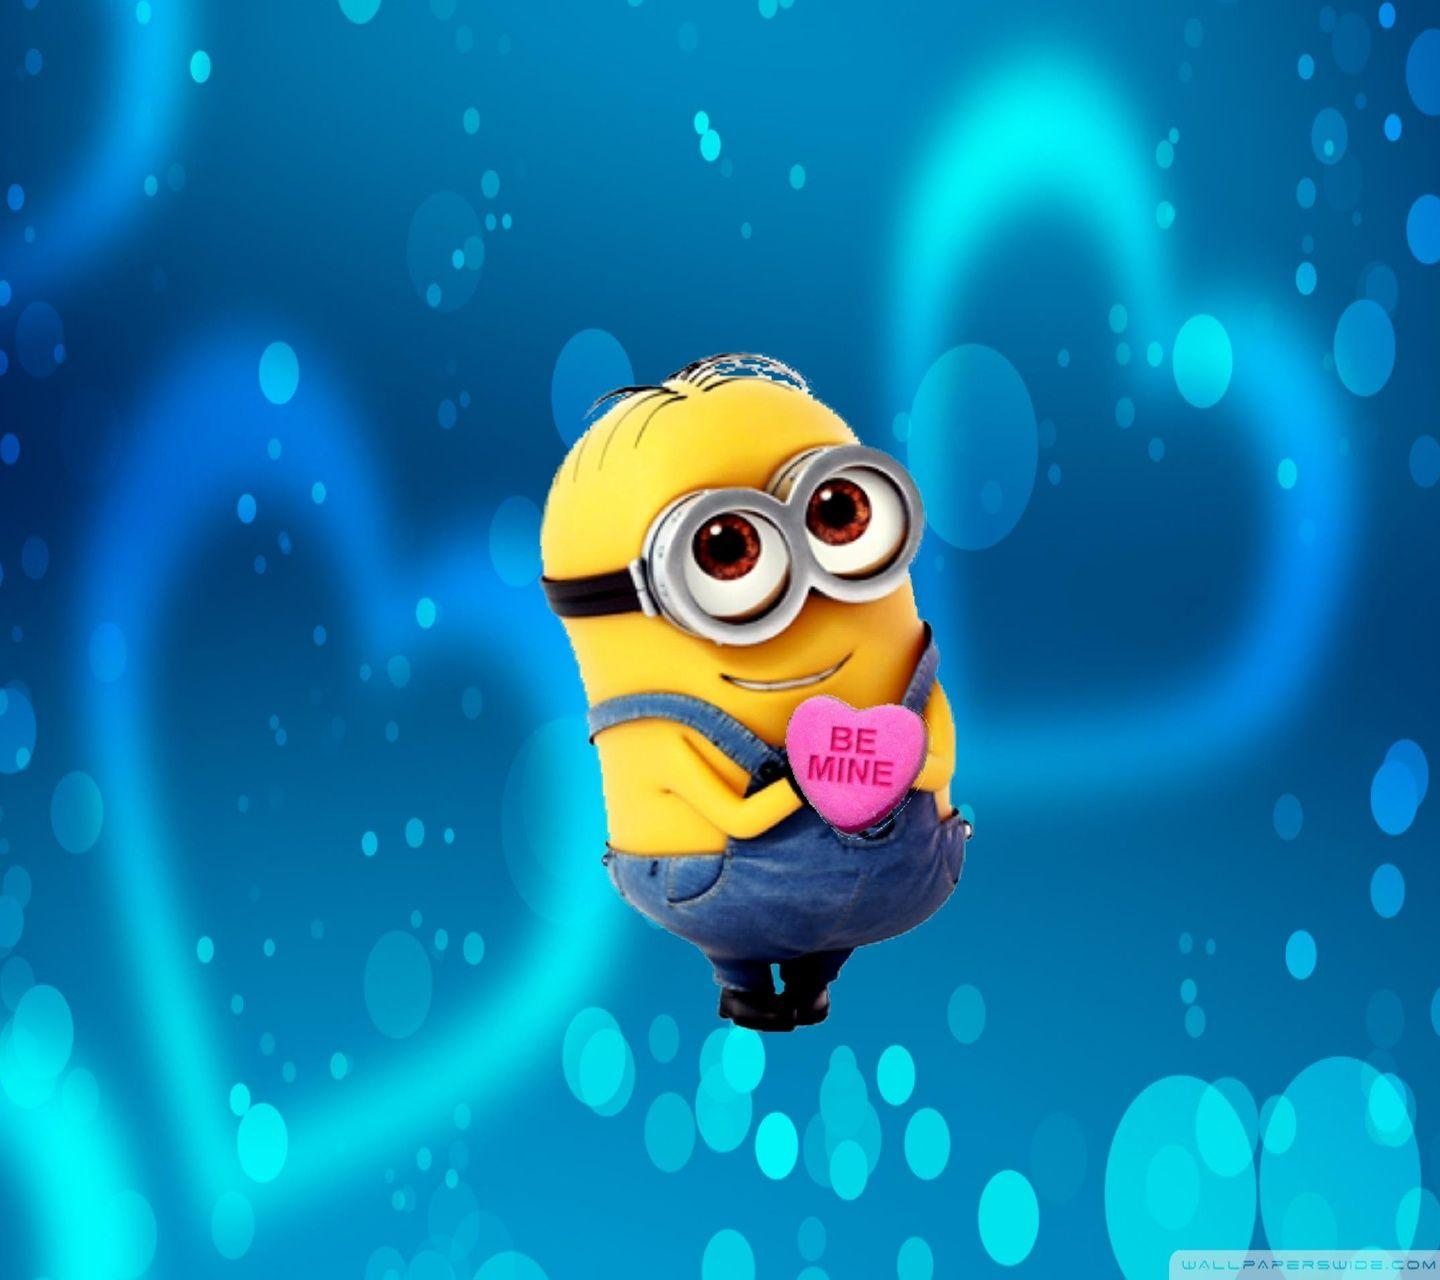 Backgrounds Minion Wallpaper Cave A collection of the top 54 minion wallpapers and backgrounds available for download for free. backgrounds minion wallpaper cave